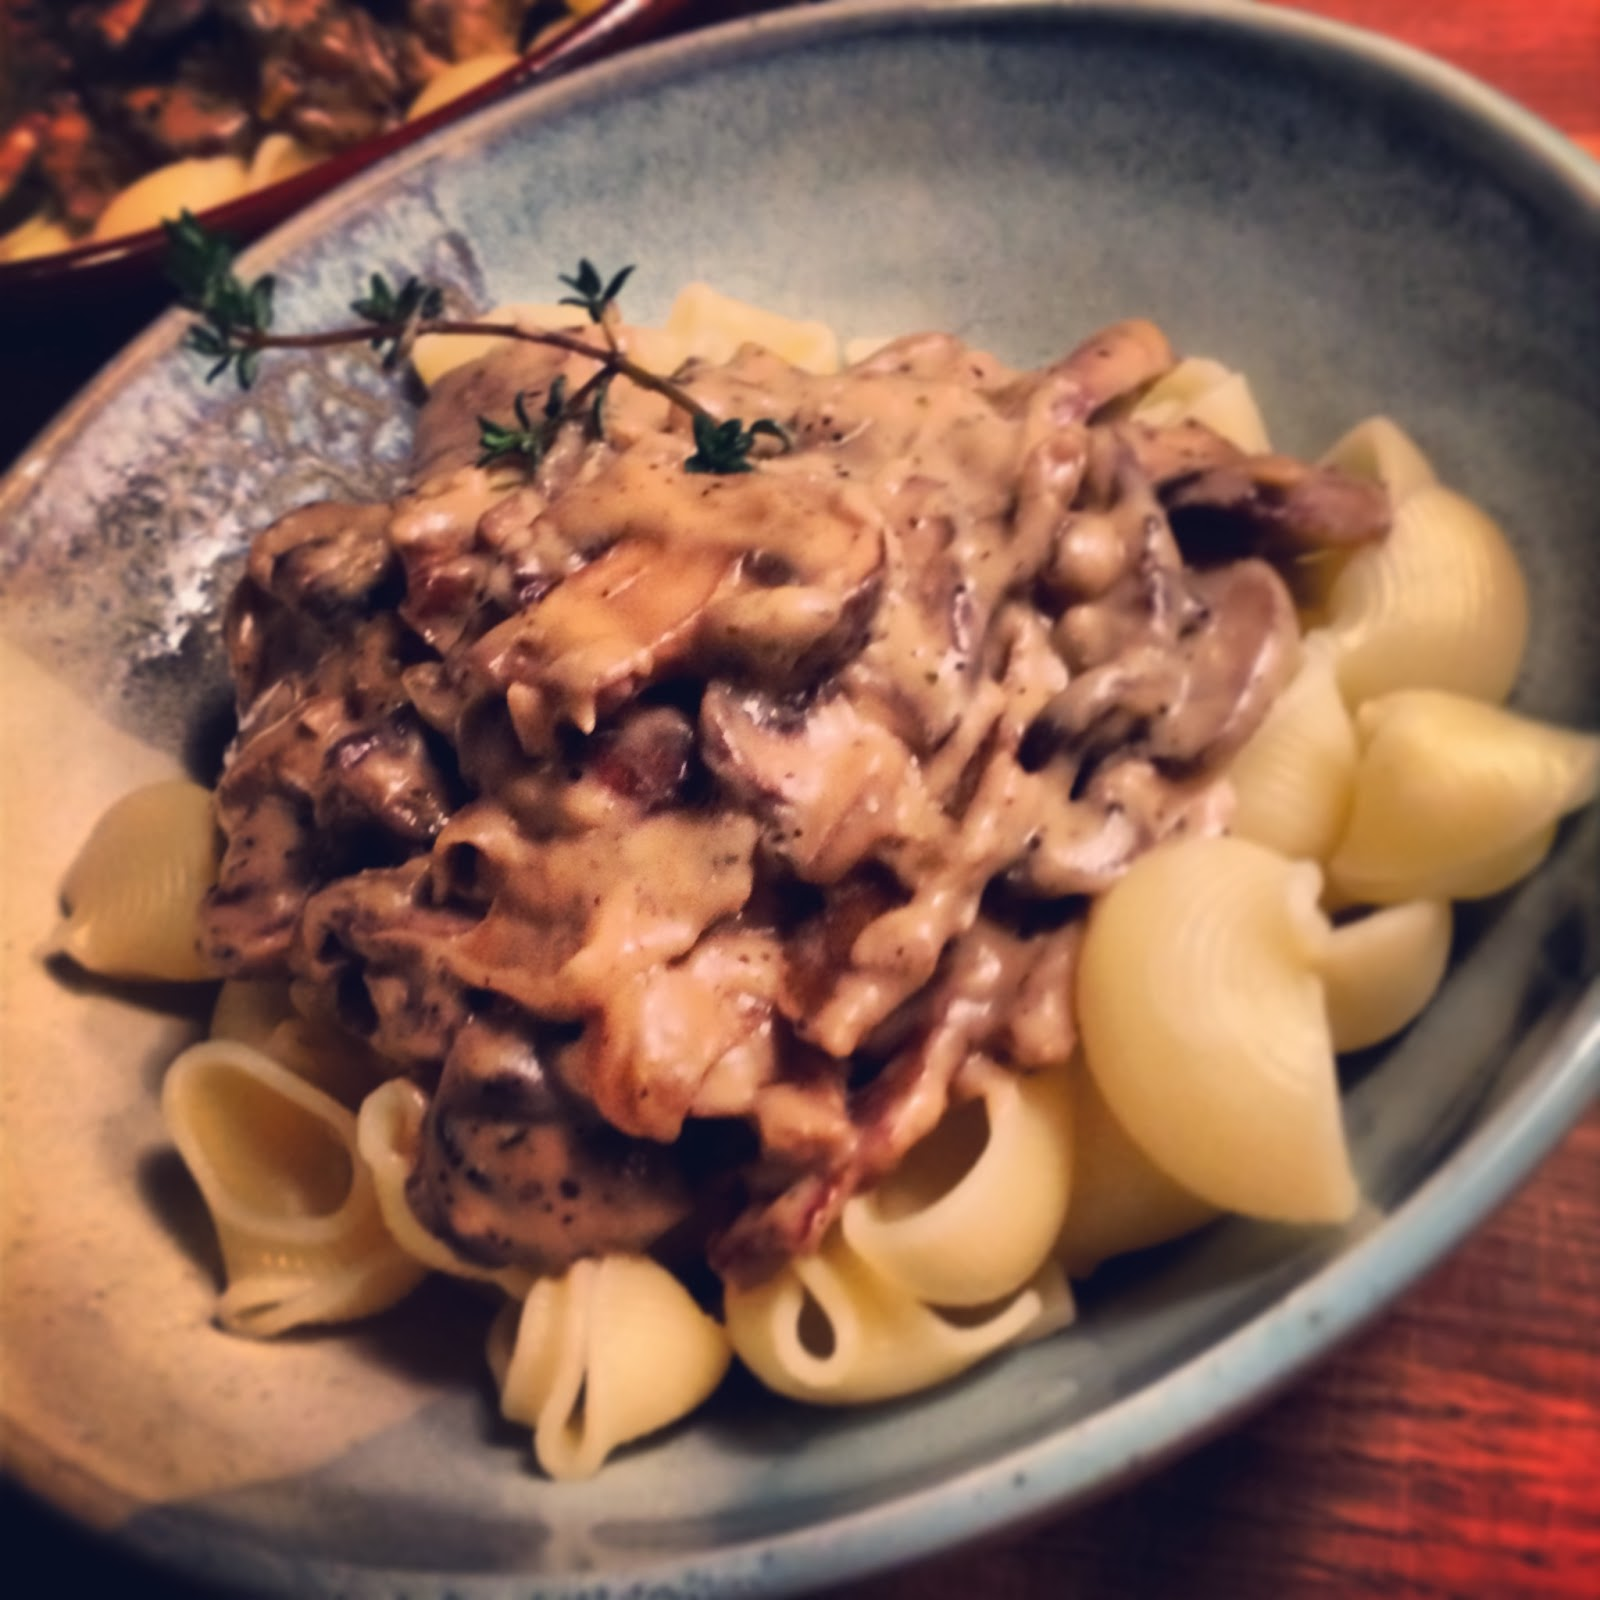 ... with Some Awesome Seitan-Mushroom Stroganoff for Your Dining Pleasure